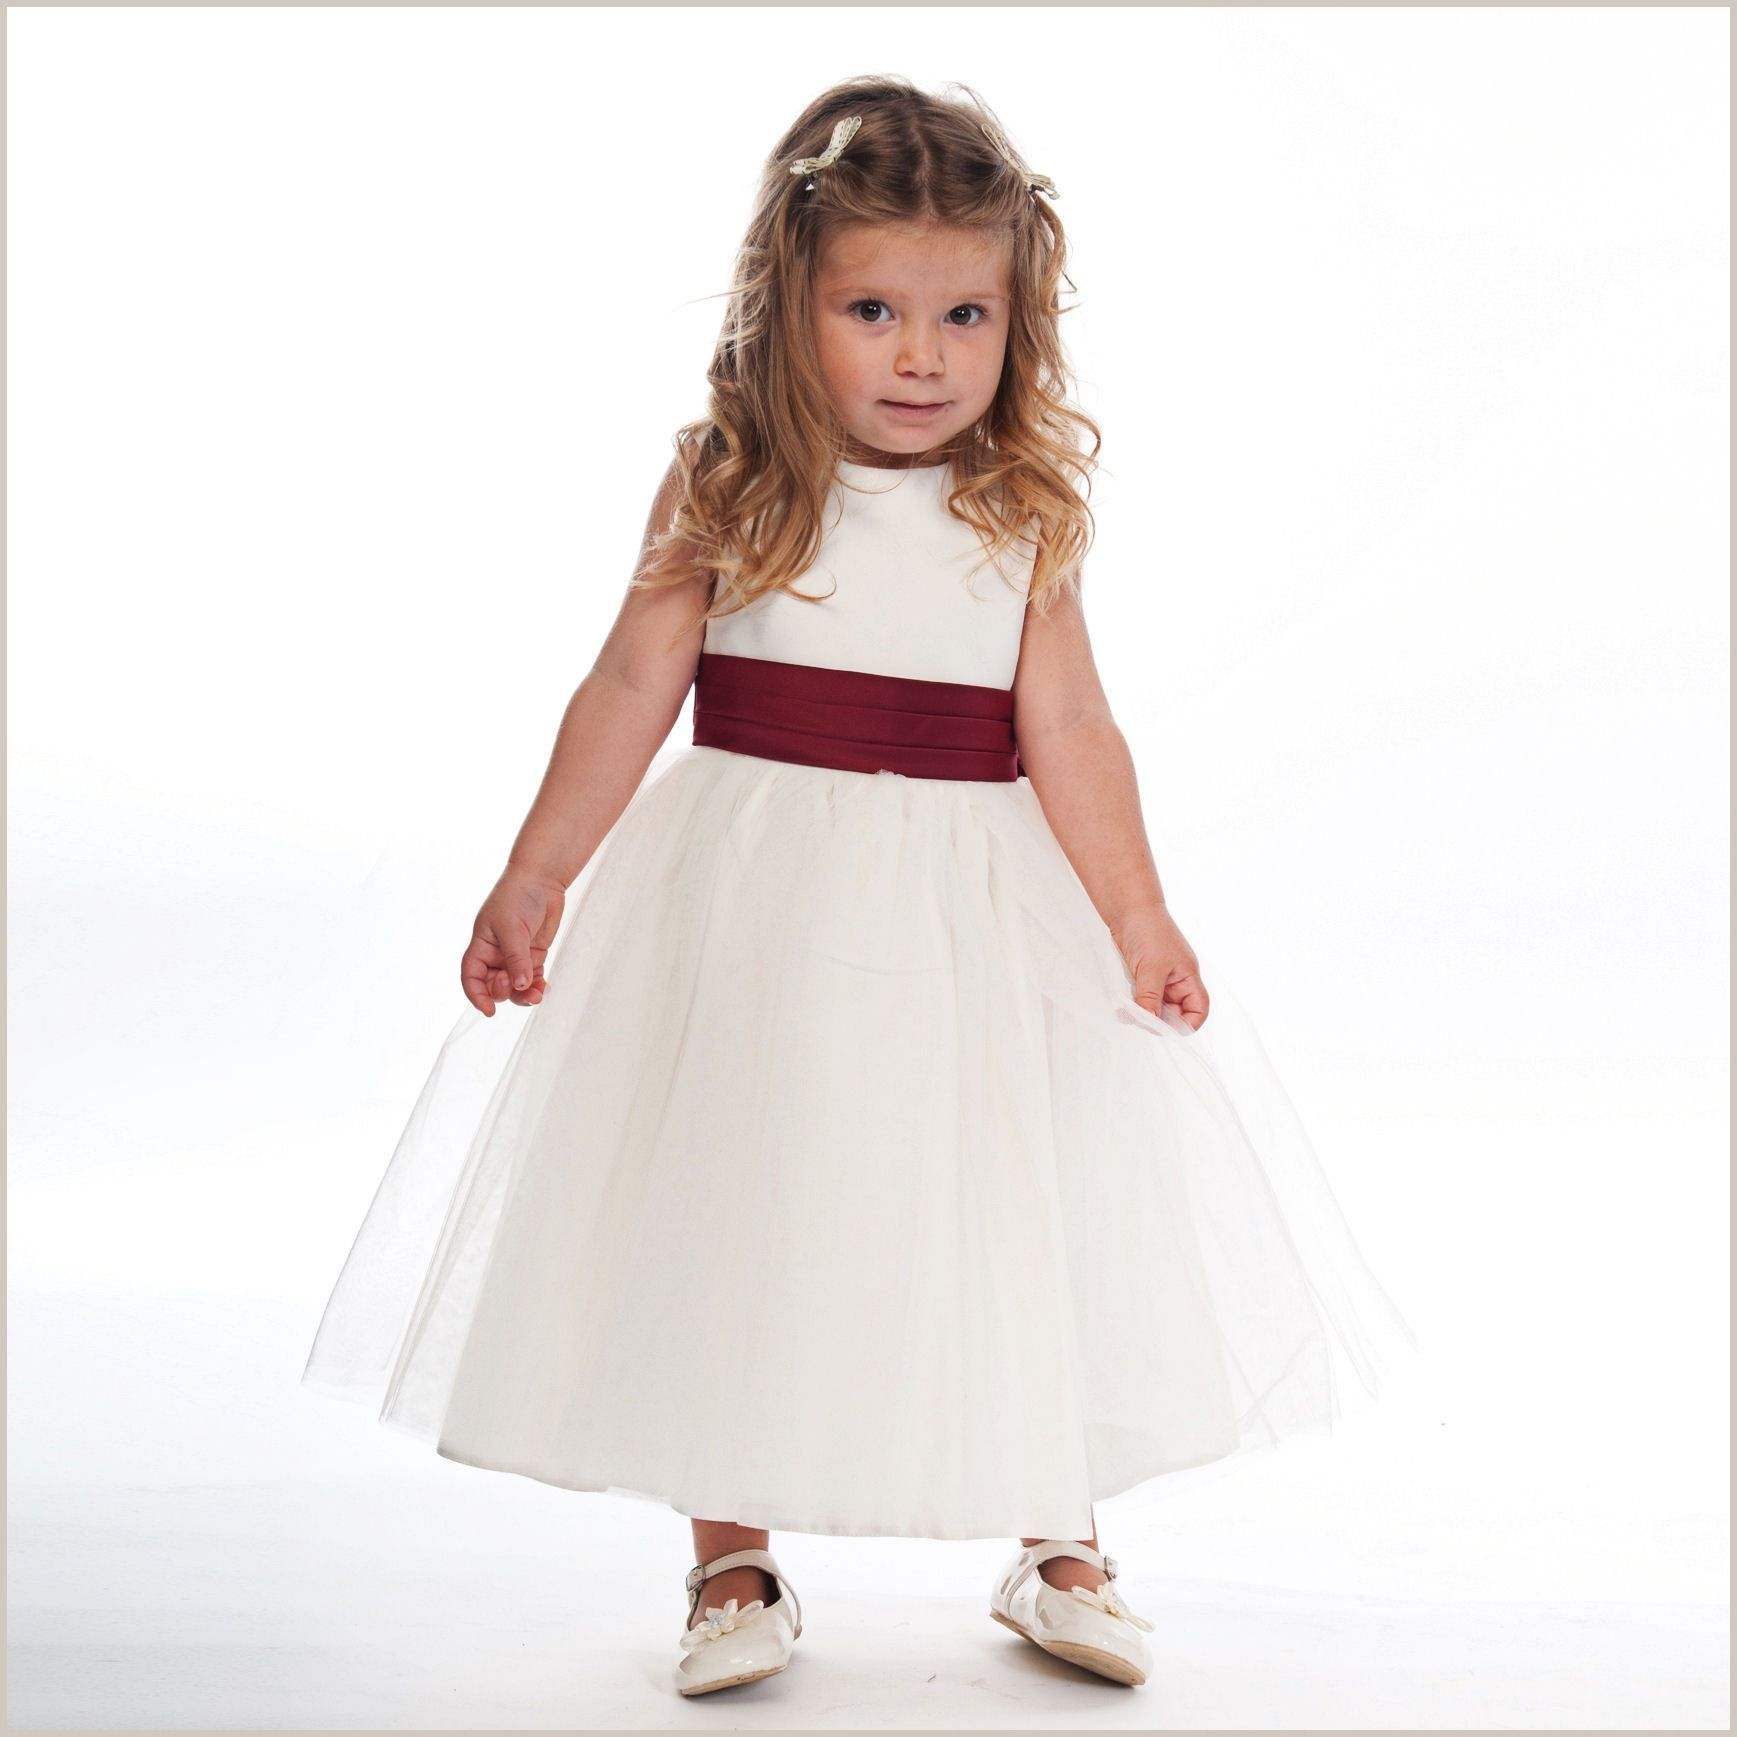 Children bridesmaid dresses with images kids